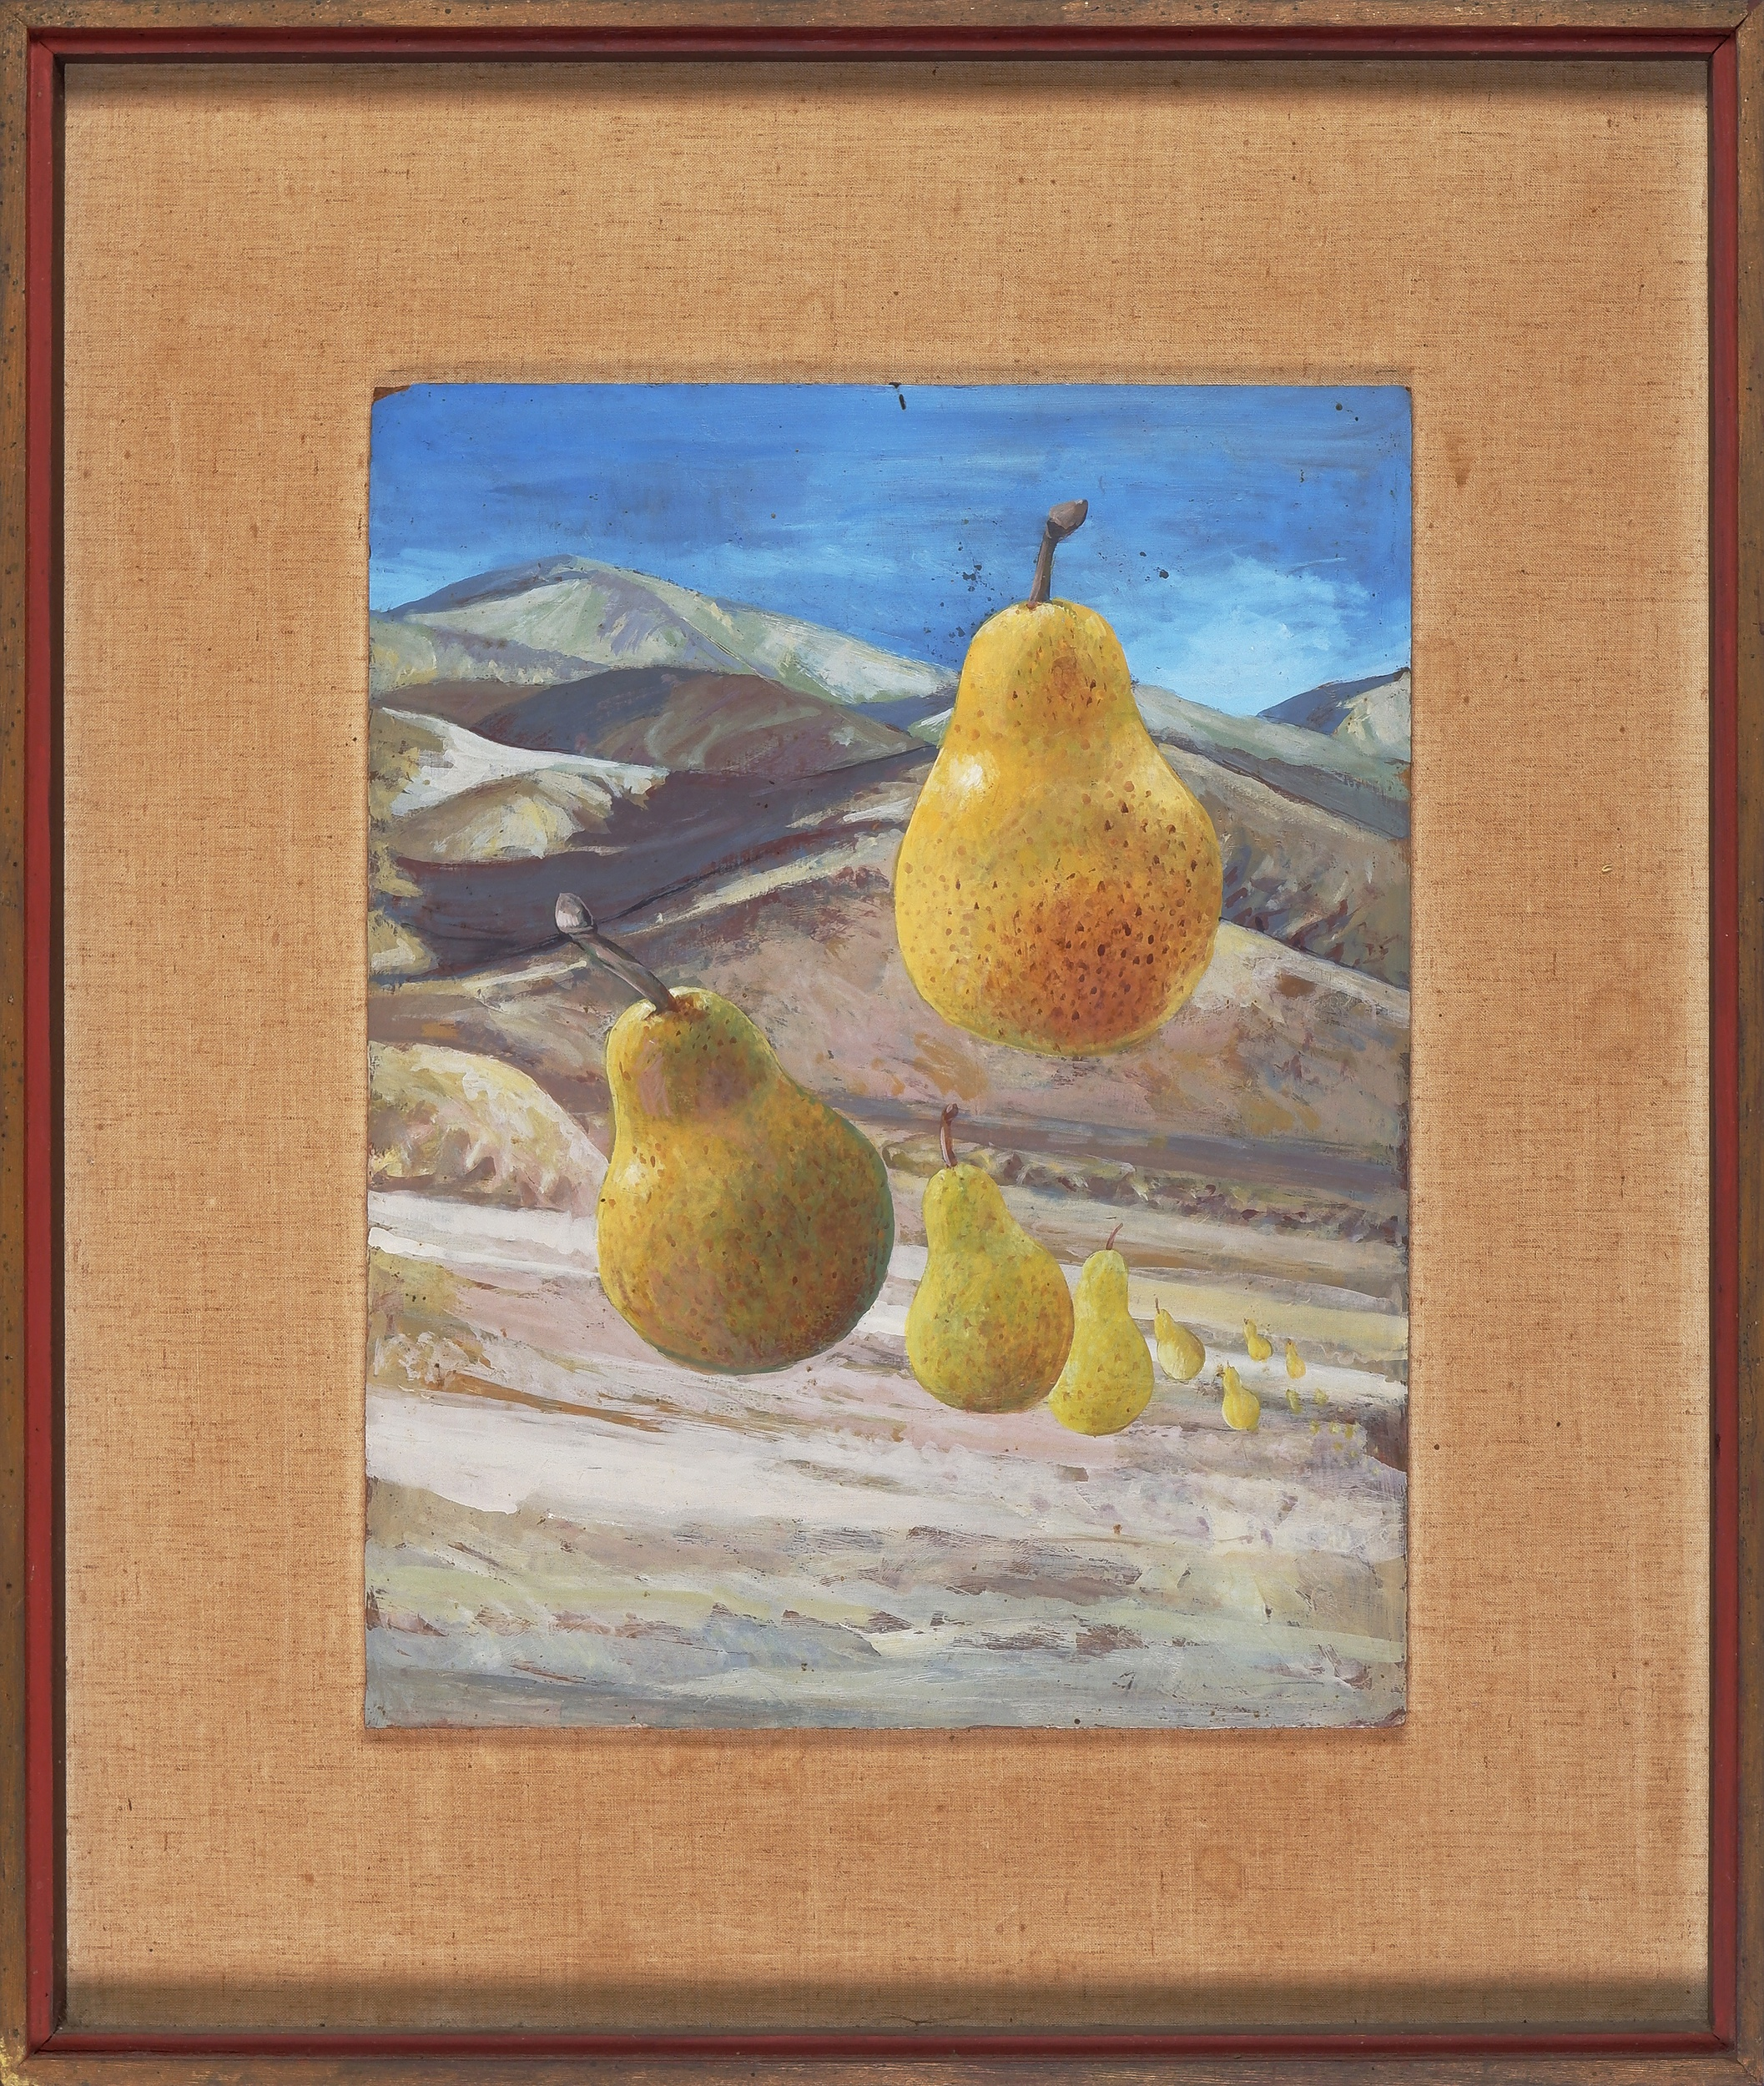 'William Fletcher (1924-1983), Travelling Pears, Oil on Board'